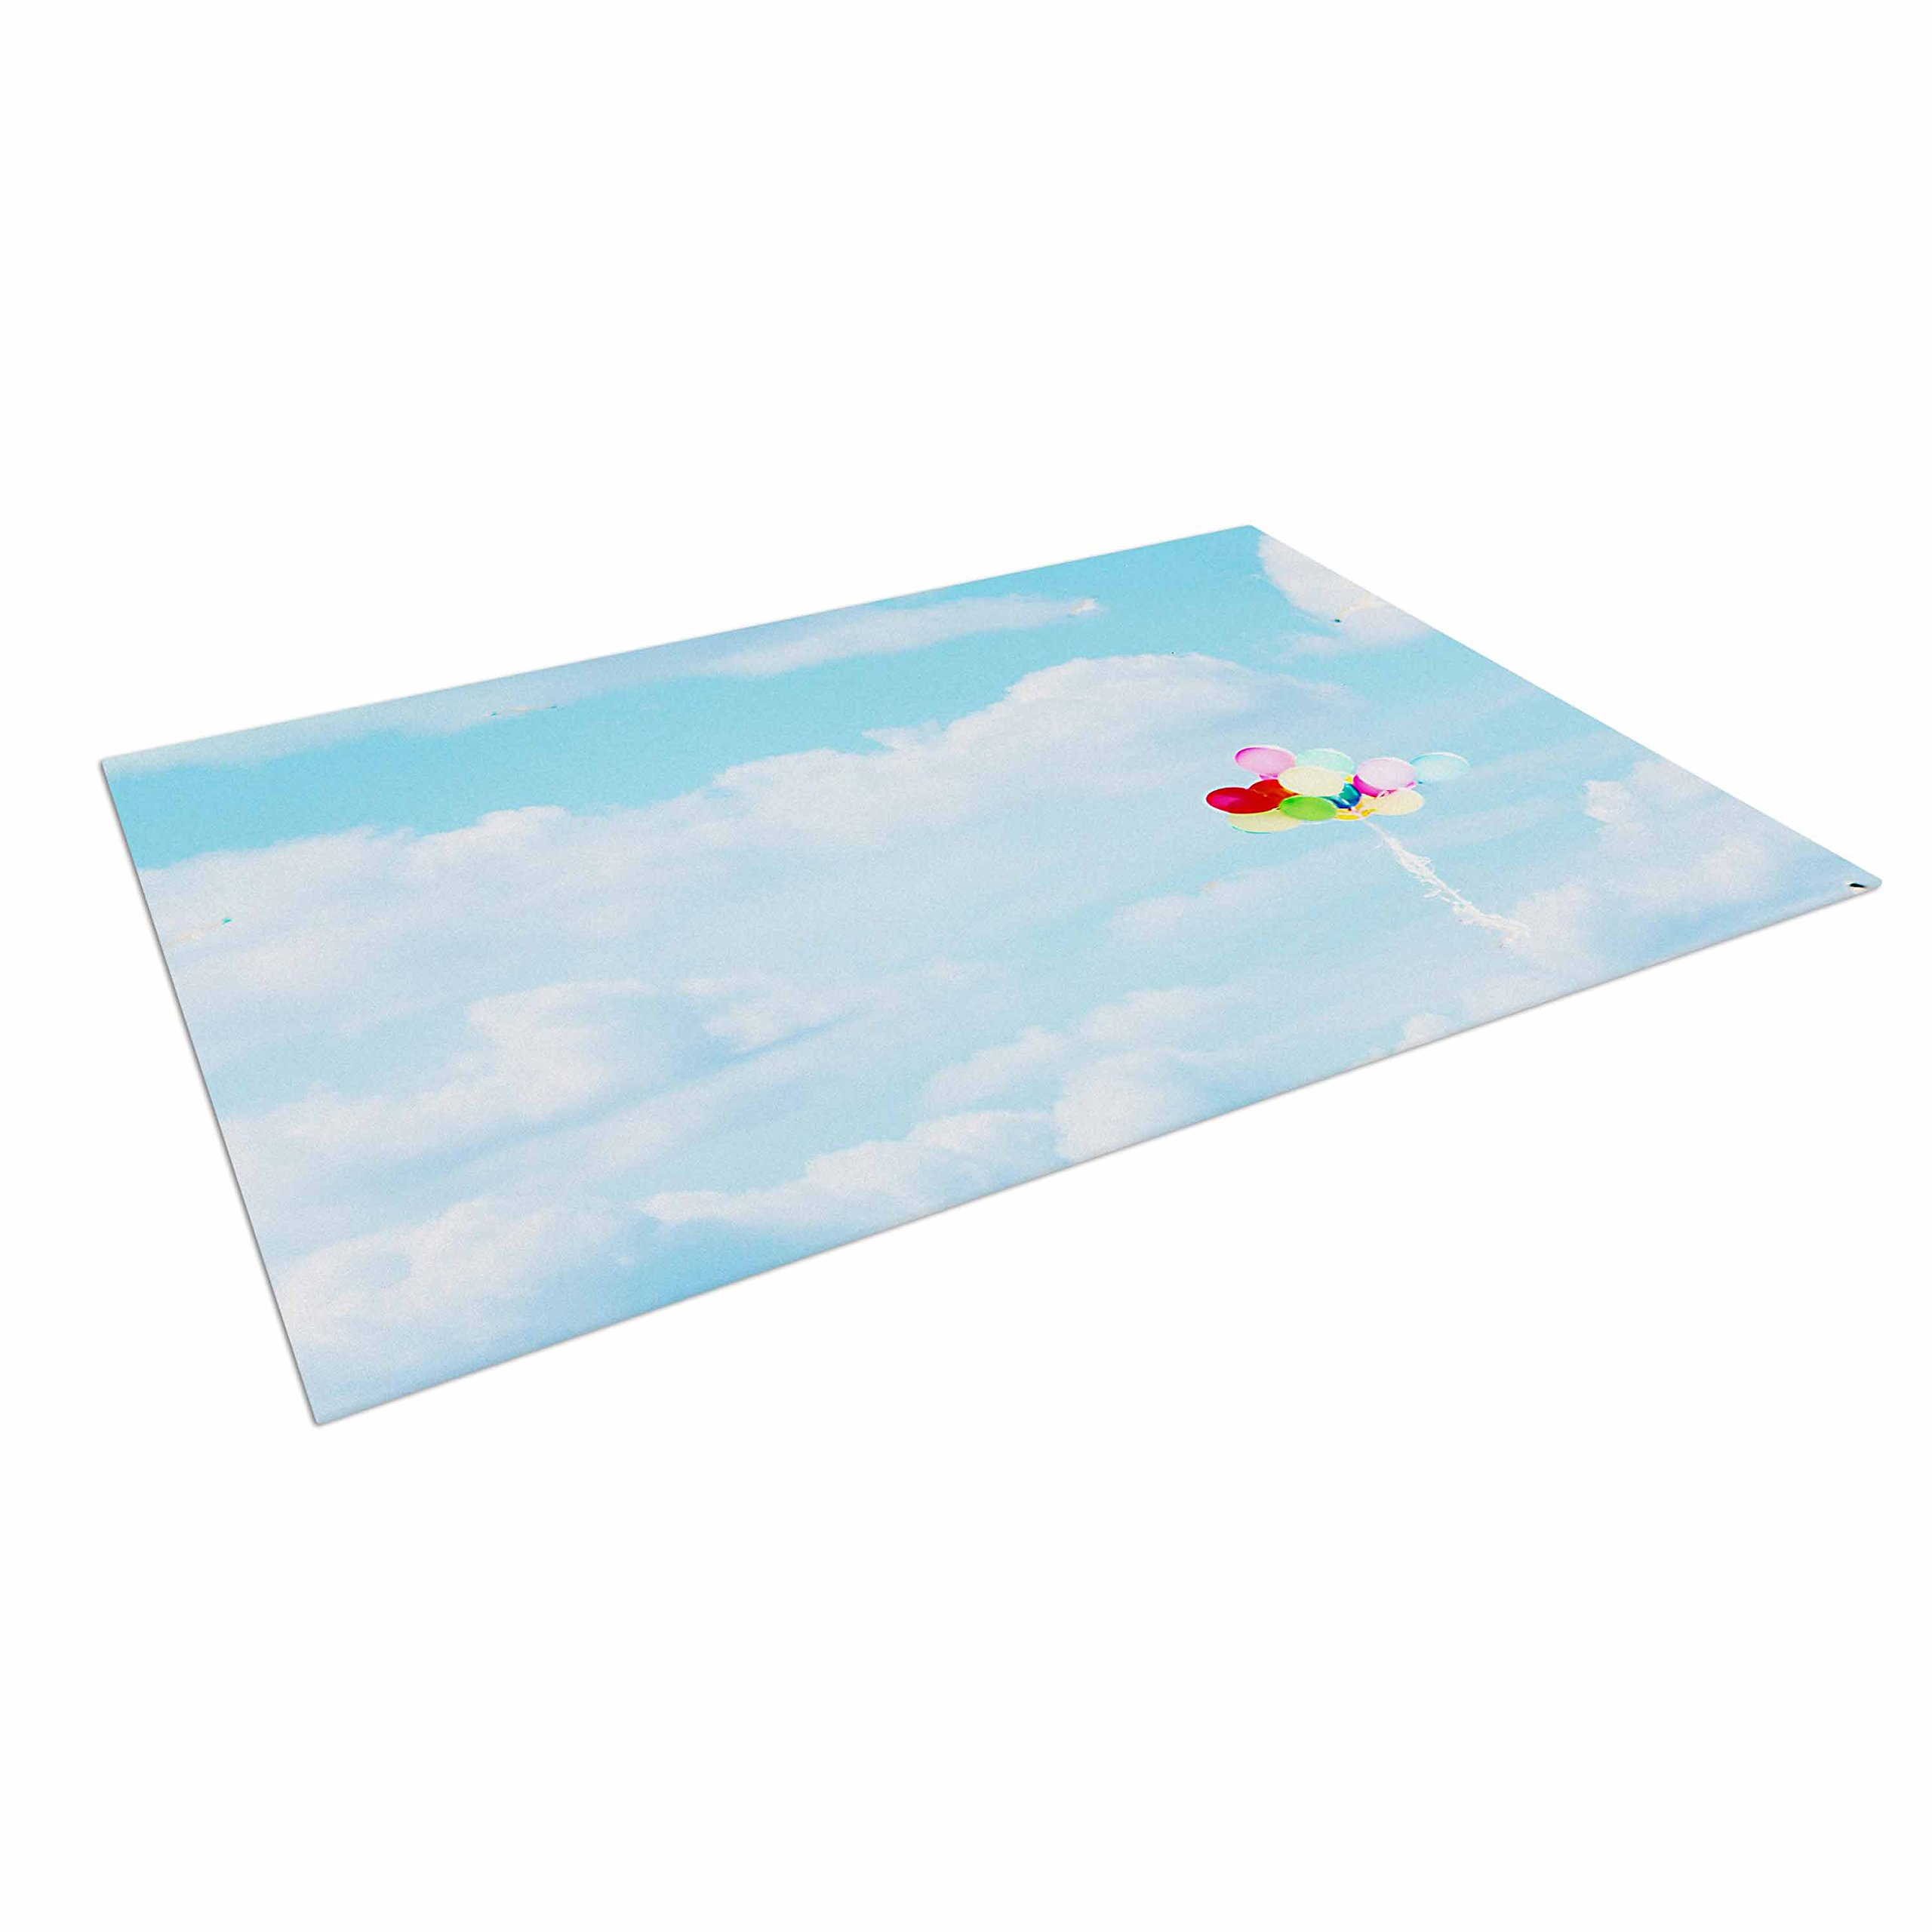 KESS InHouse Sylvia Coomes ''Balloons in The Sky'' Photography Kids Outdoor Floor Mat, 4' x 5'